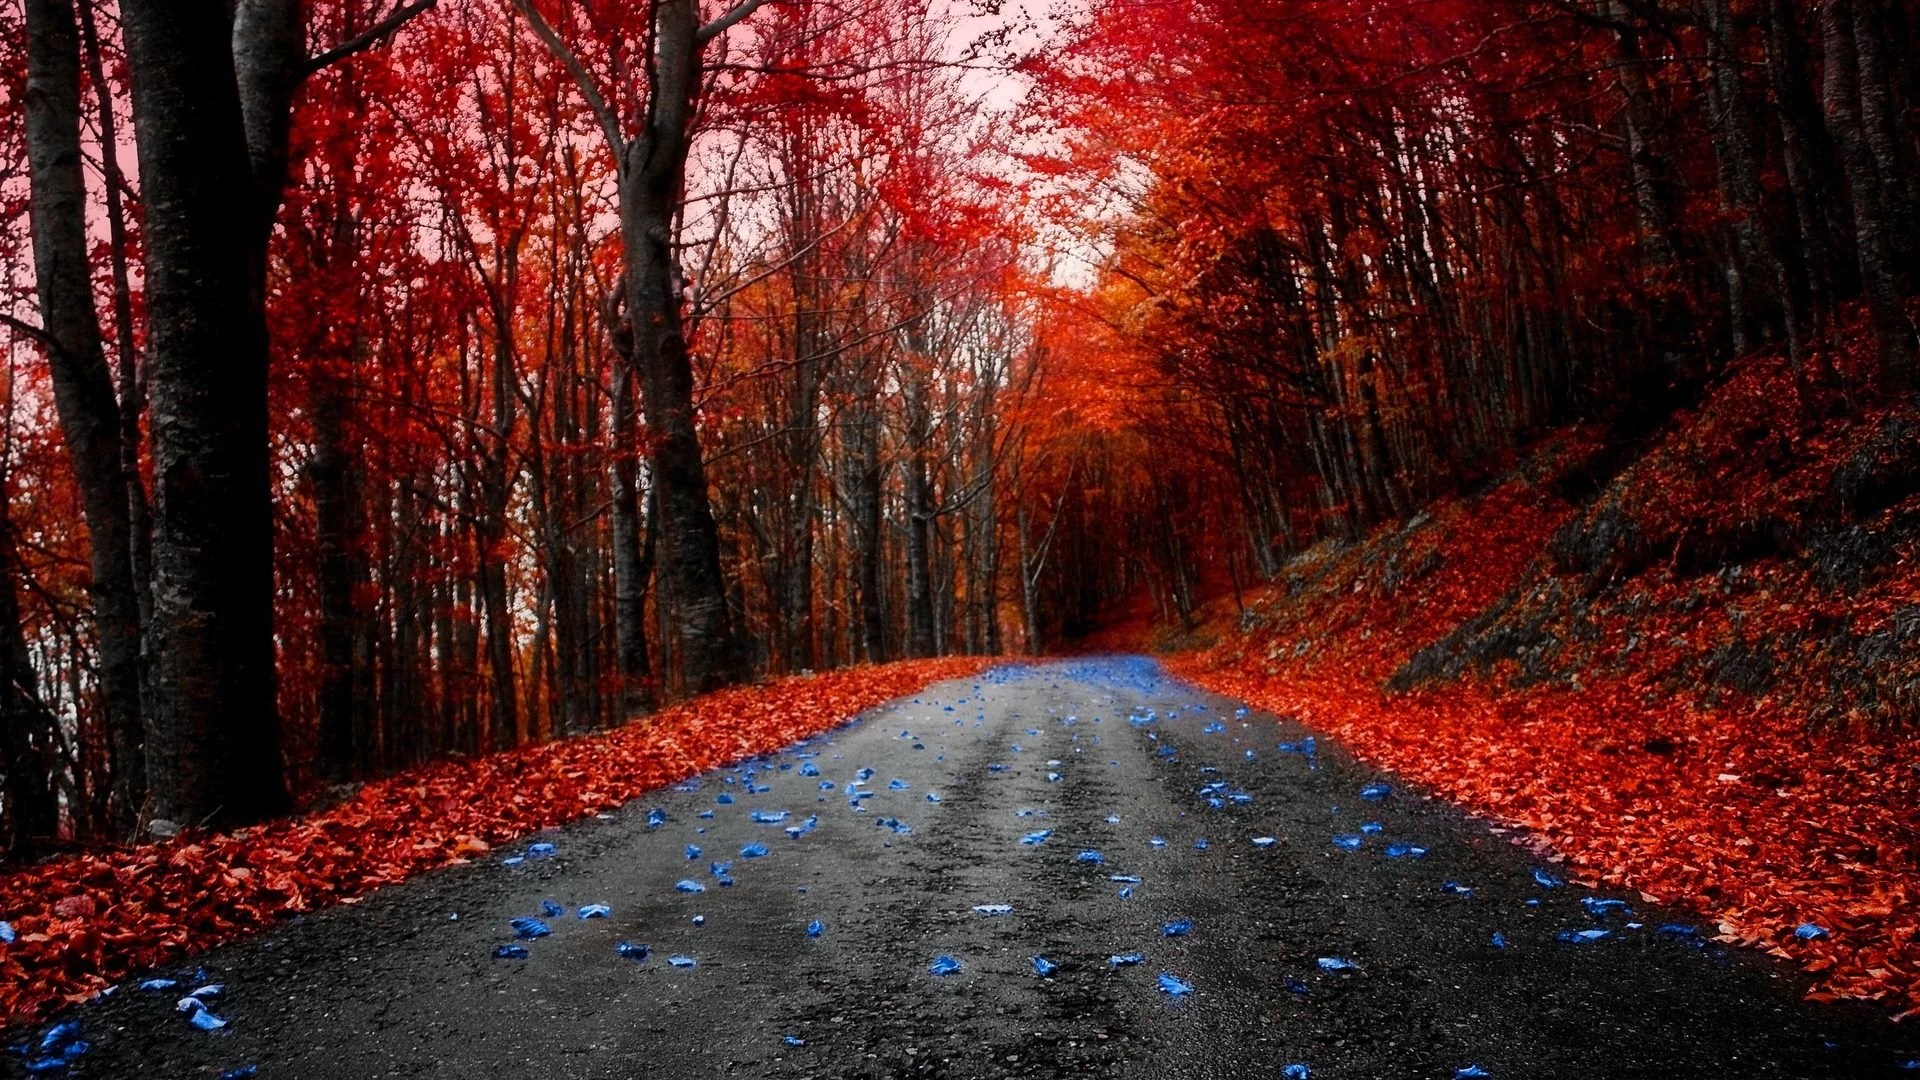 Full Screen Desktop Fall Leaves Wallpaper Image Forests Maple Leaves Forest Autumn Road Red Blue